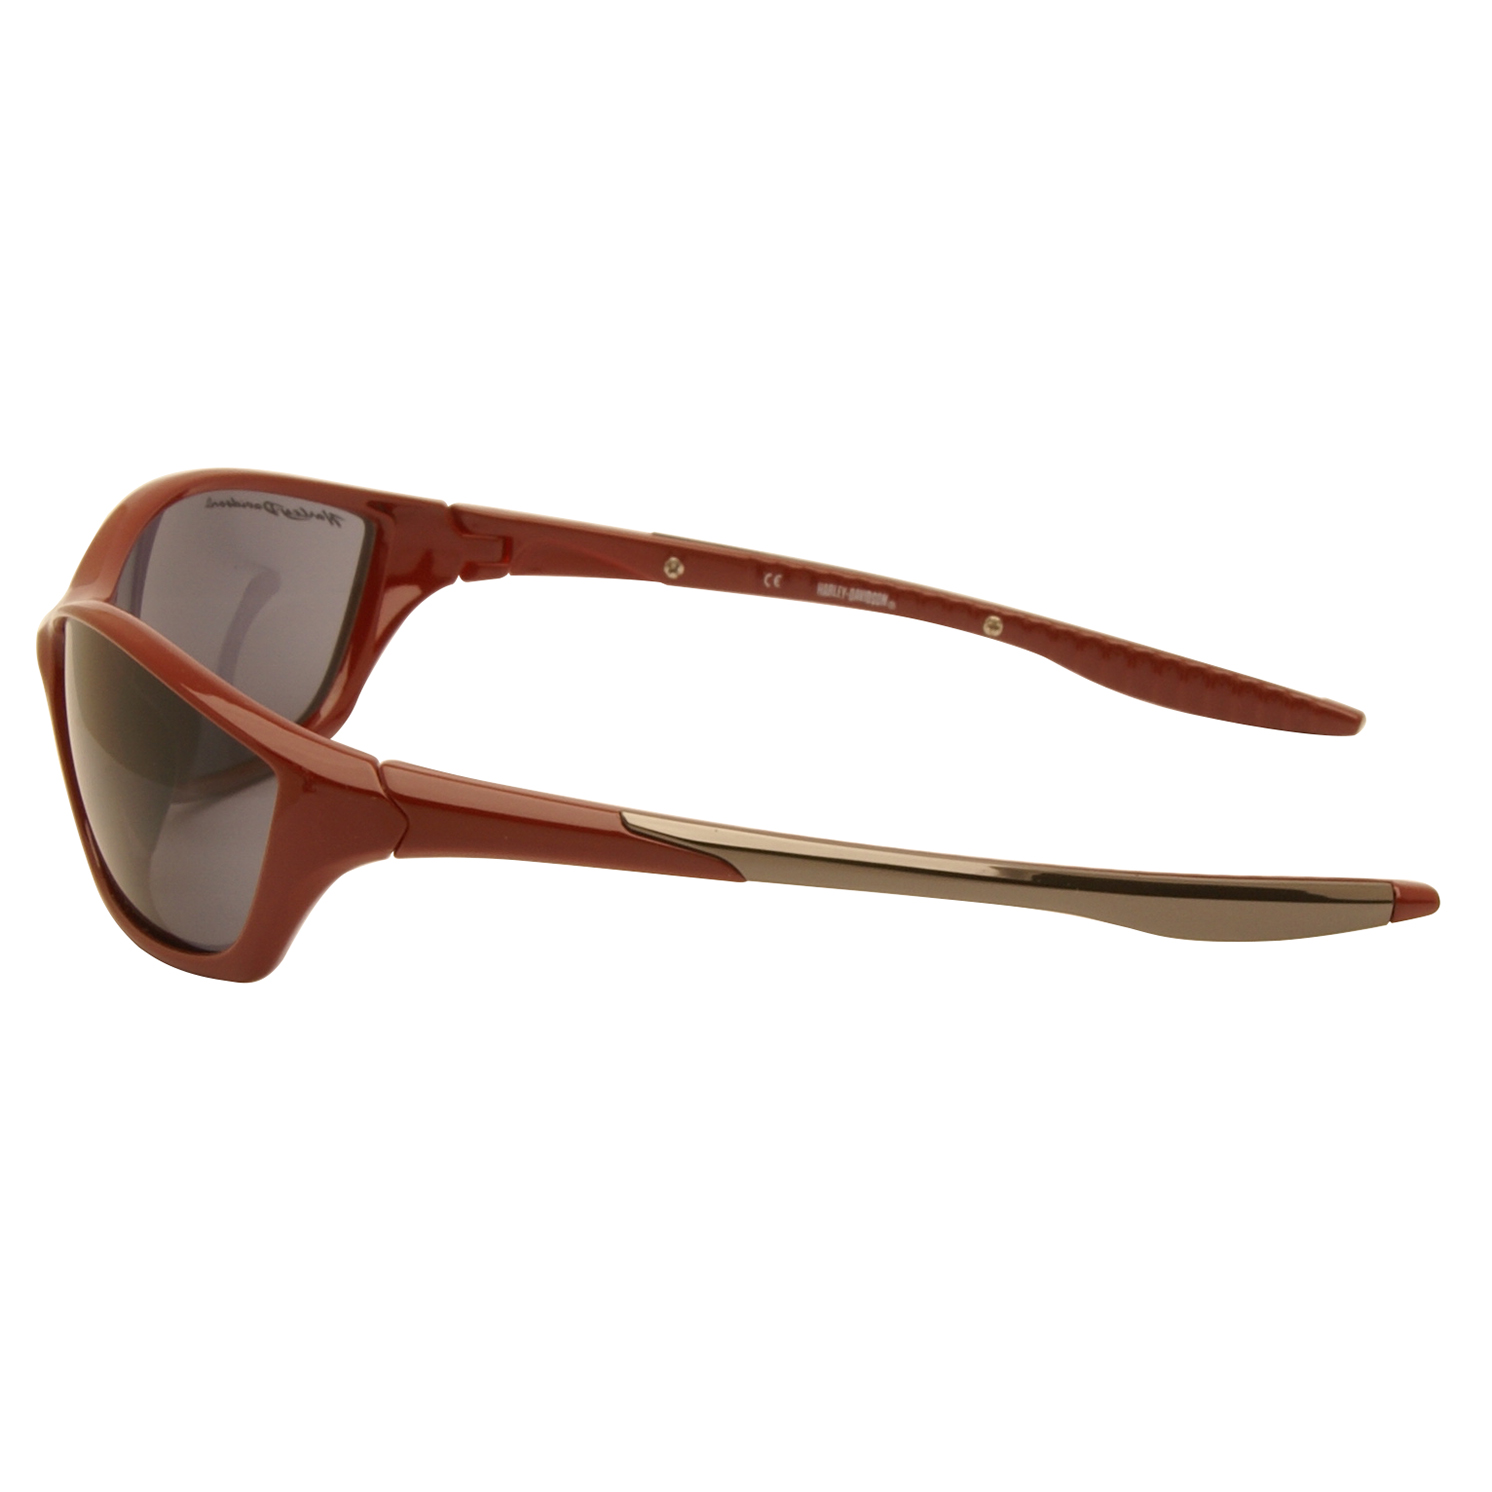 Harley Davidson – Dark Red Wraparound Style Sunglasses with Case